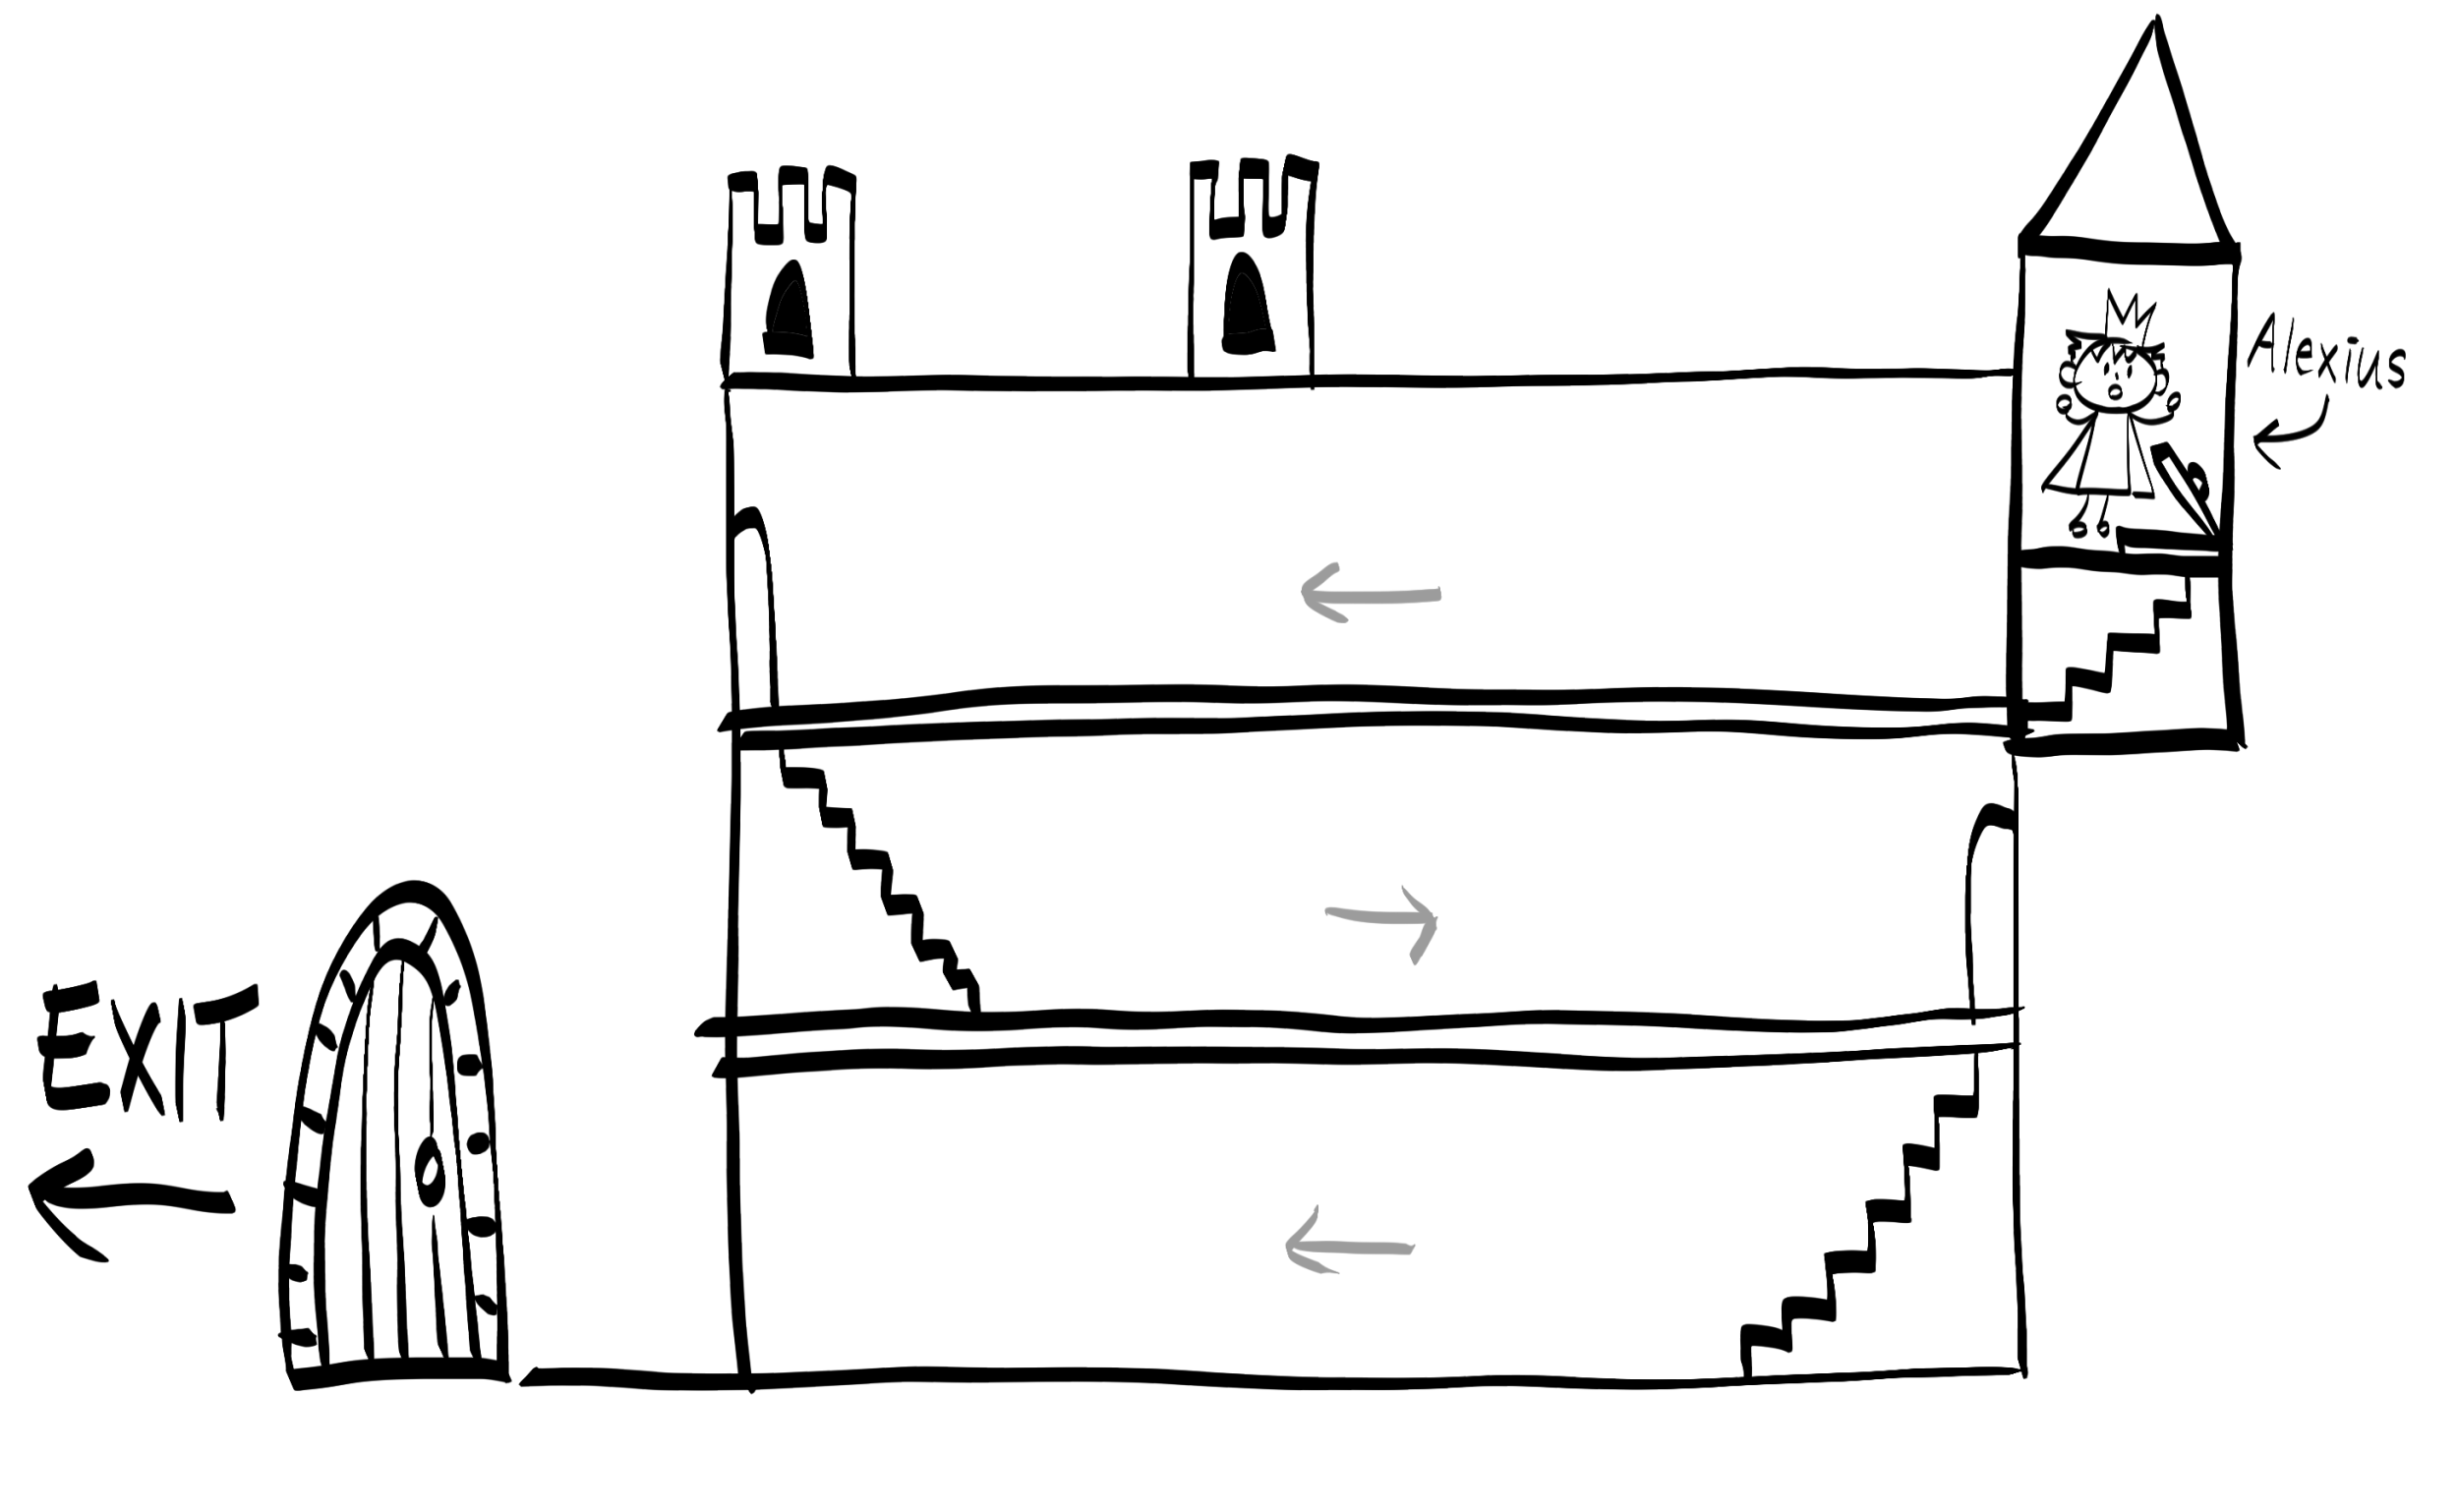 A drawing of a castle with three floors. In the bottom left is a gate labelled EXIT. On the top right is a tiny tower with a small figure in it, labelled Alexius.